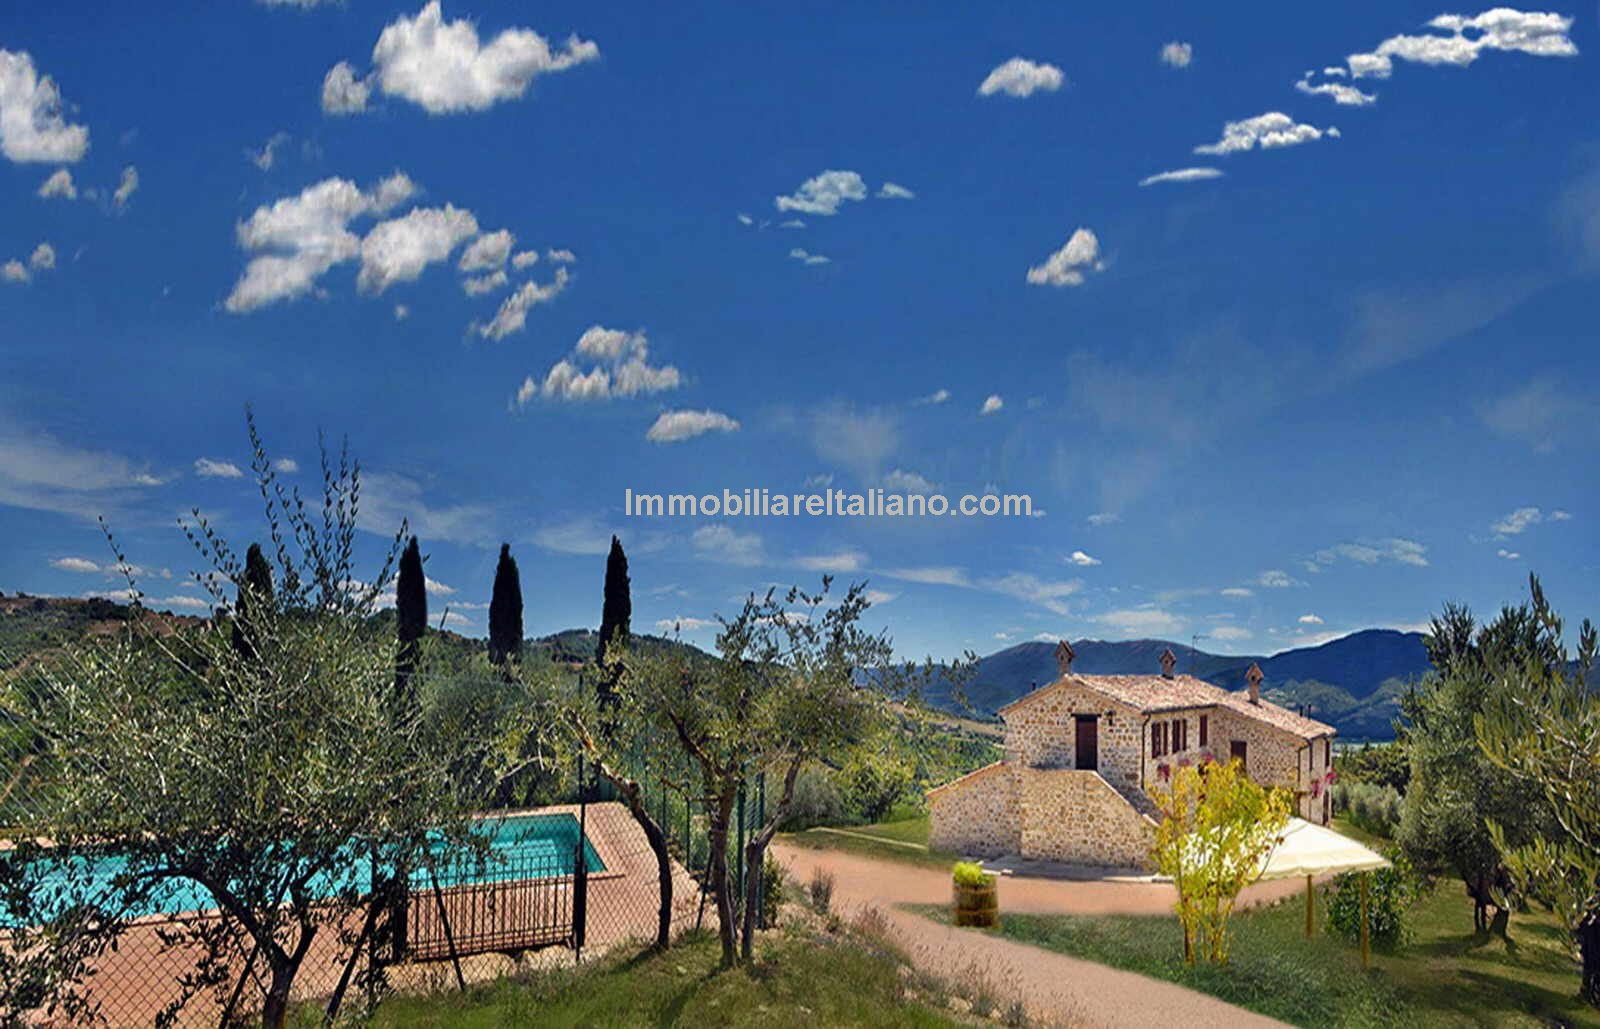 External view of Agriturismo for sale